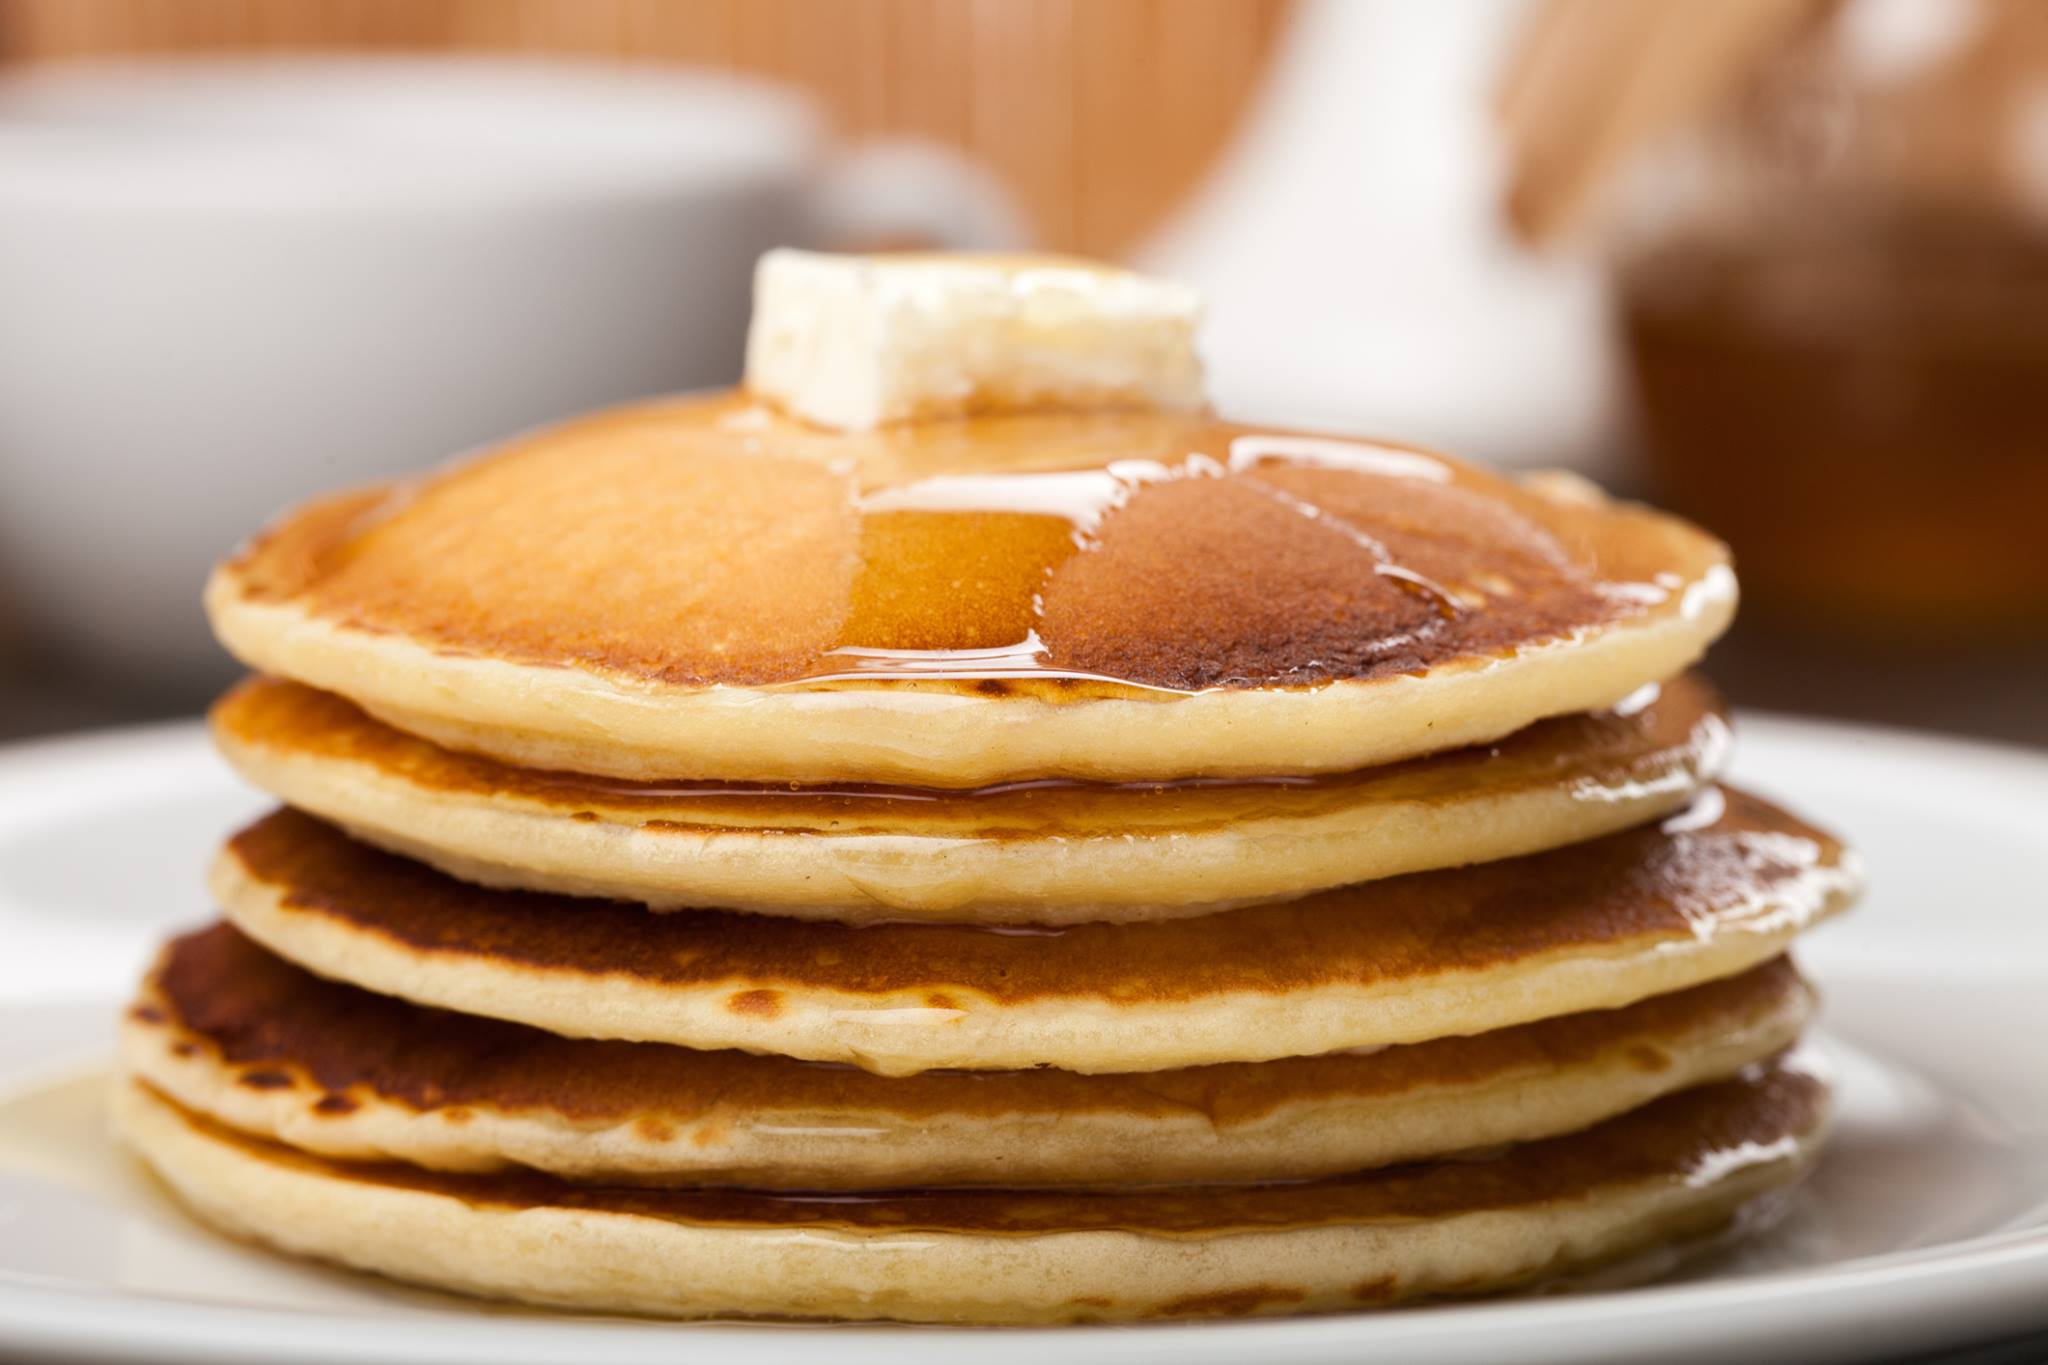 Stack of pancakes with maple syrup and butter